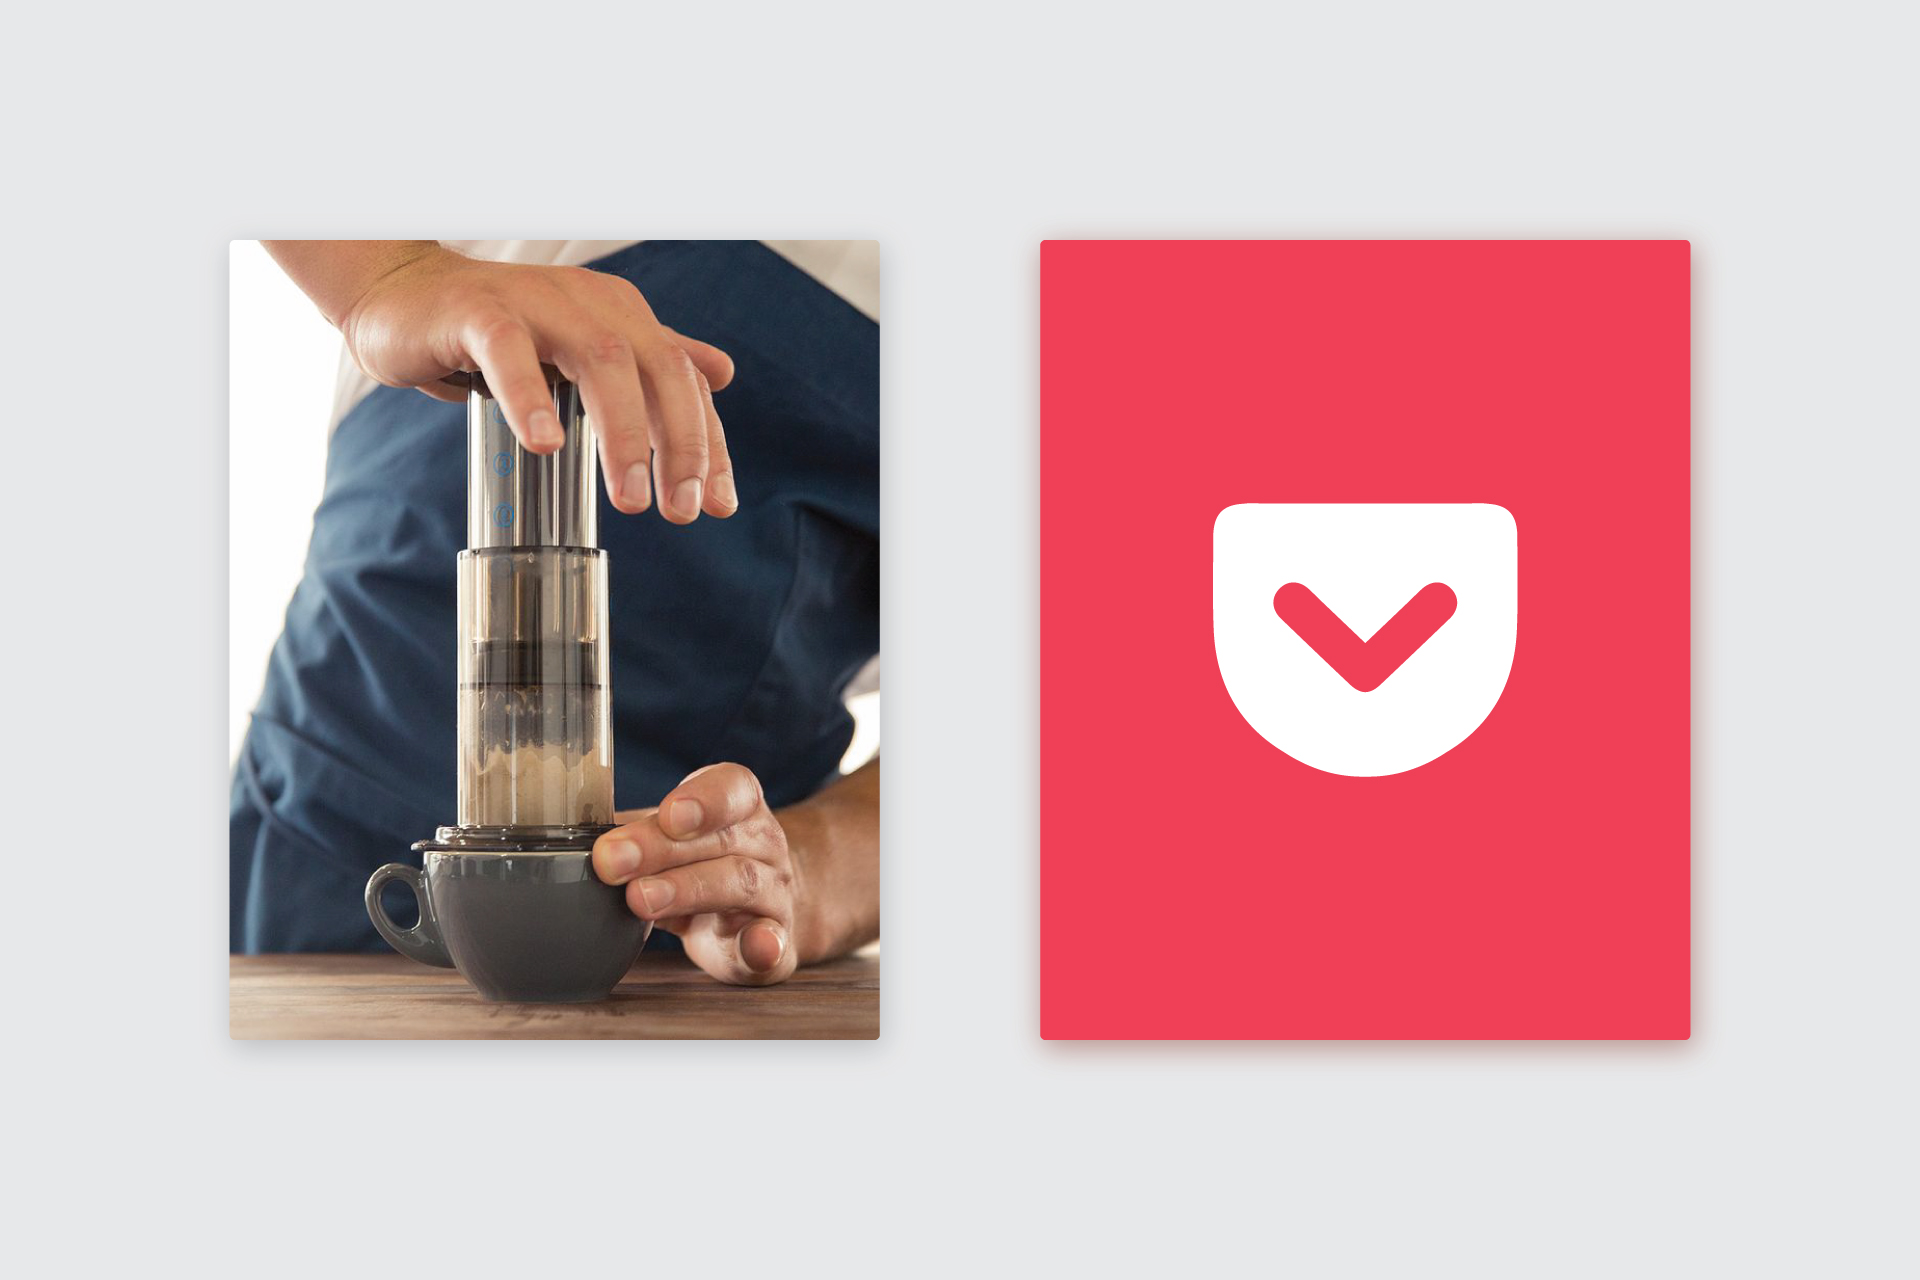 Products We Love: Aerobie Aeropress and the Pocket App